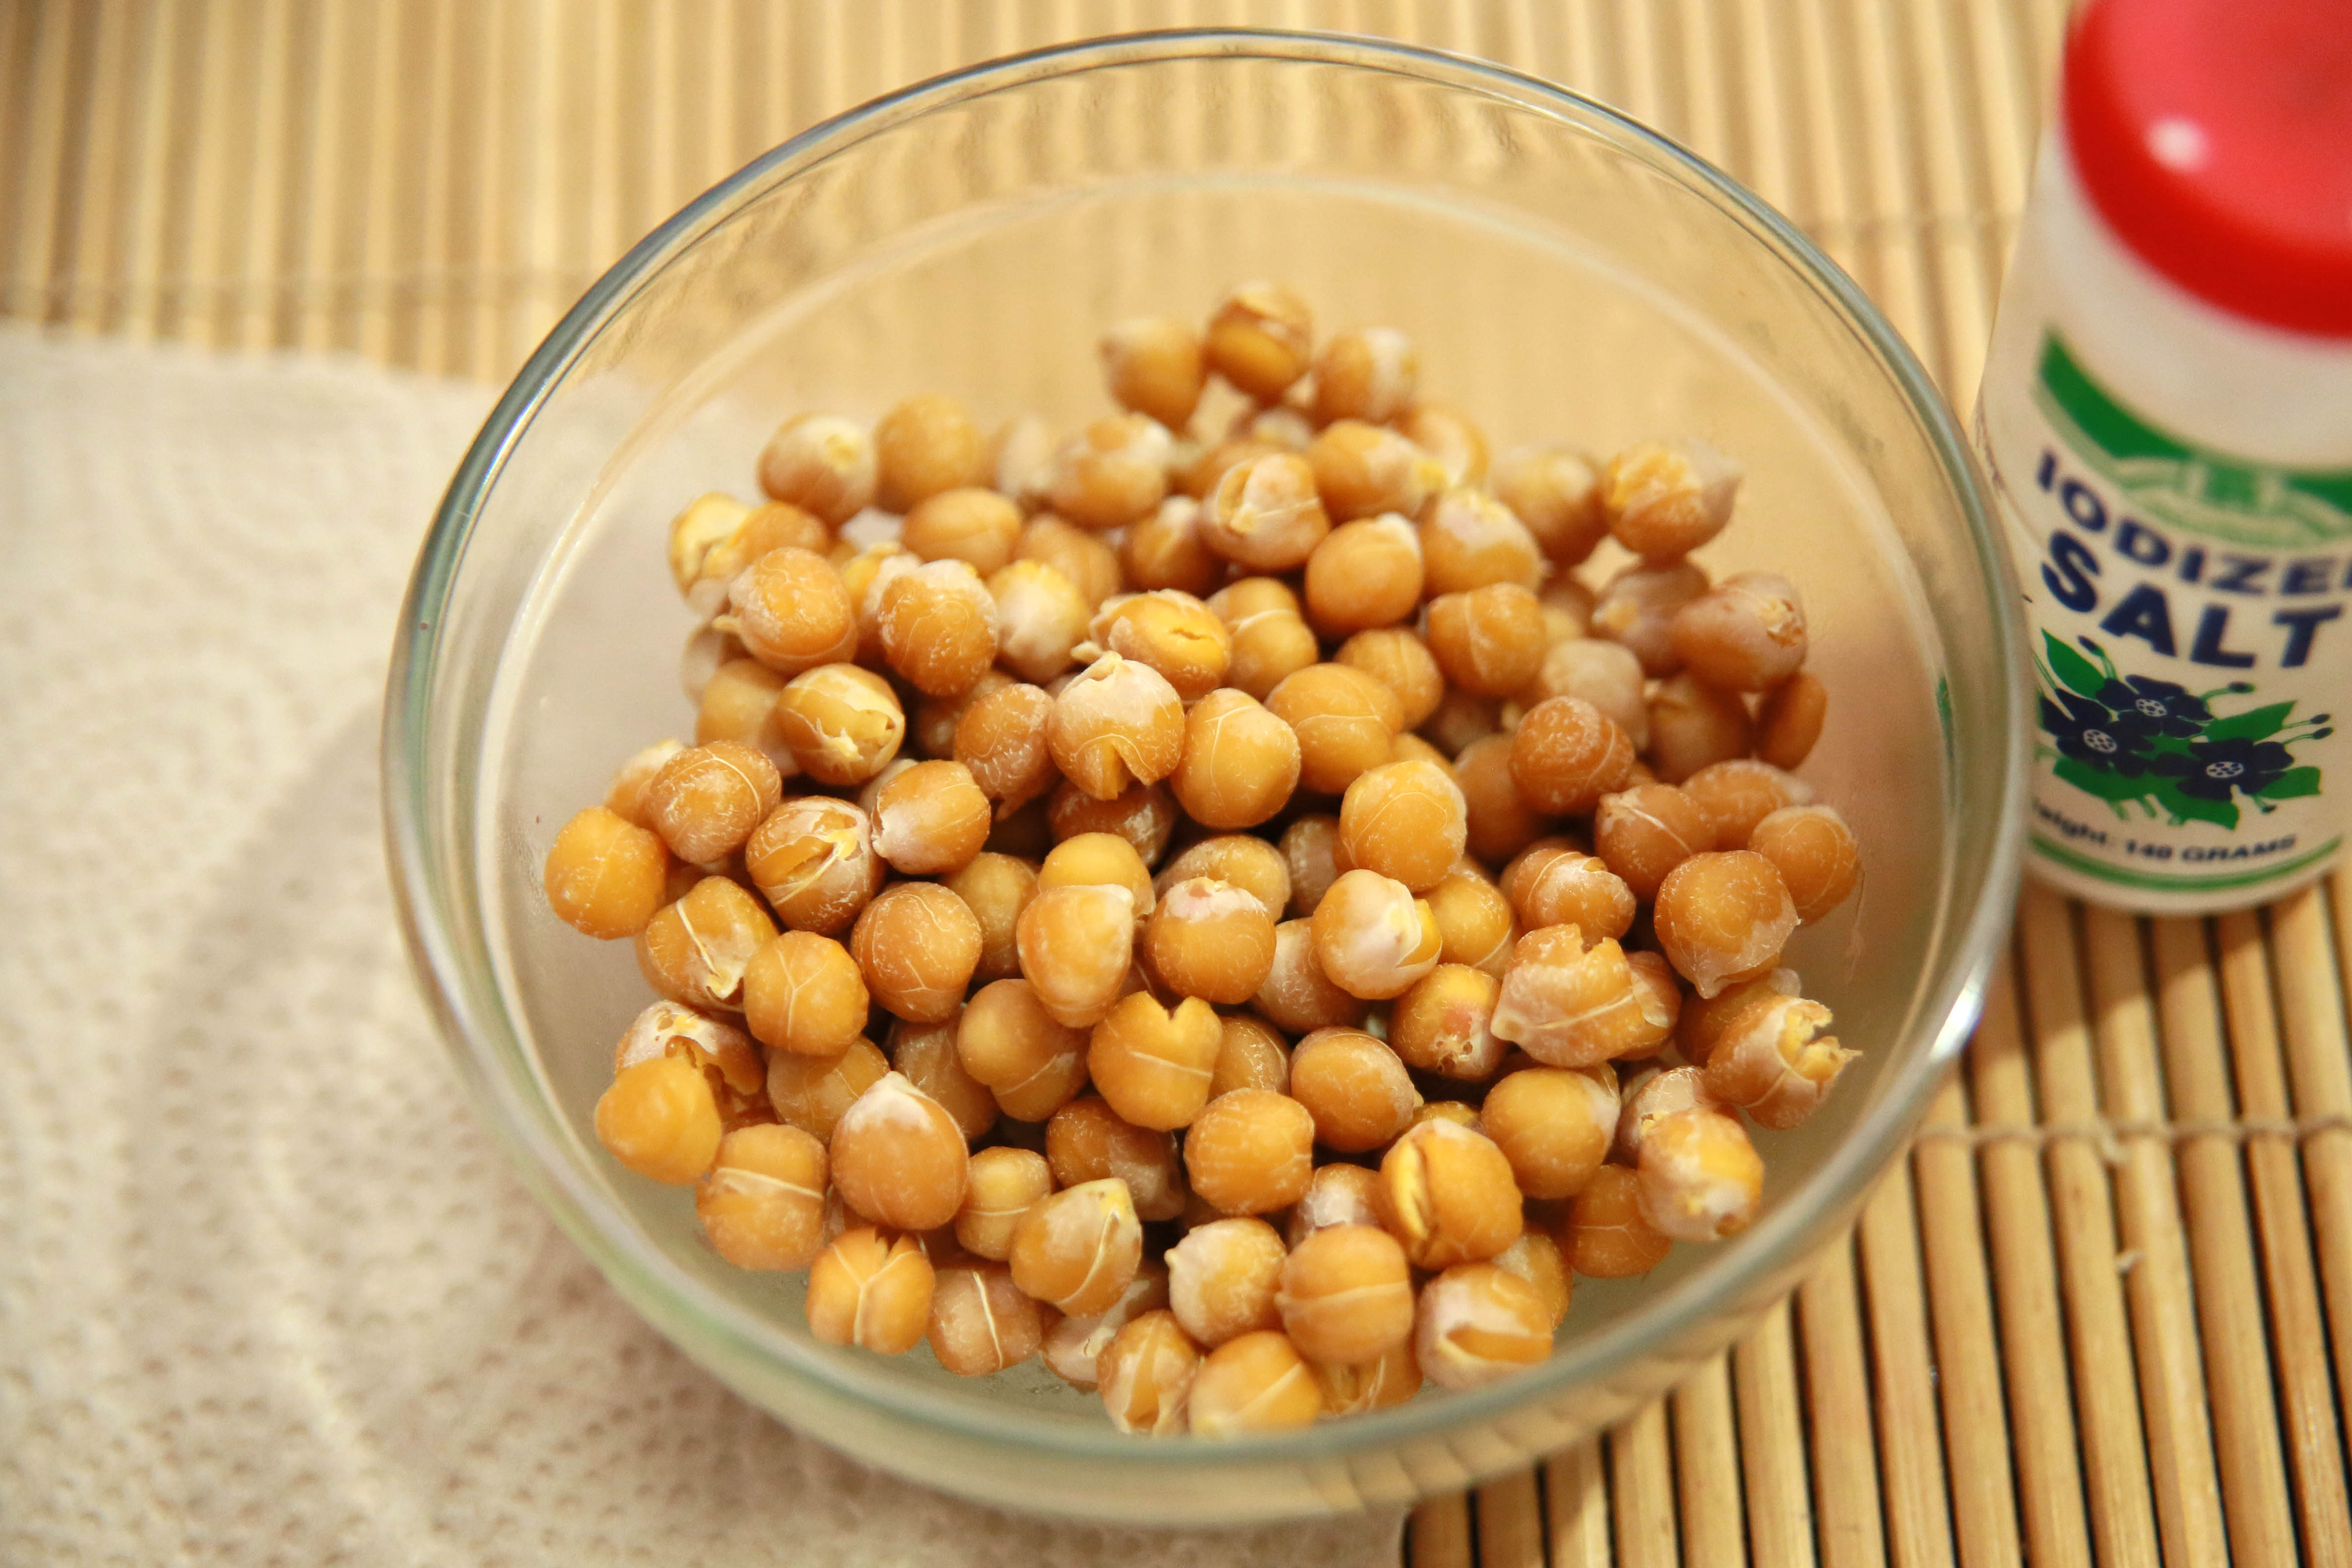 How To Make Baked Chickpea Or Garbanzo Snacks 7 Steps